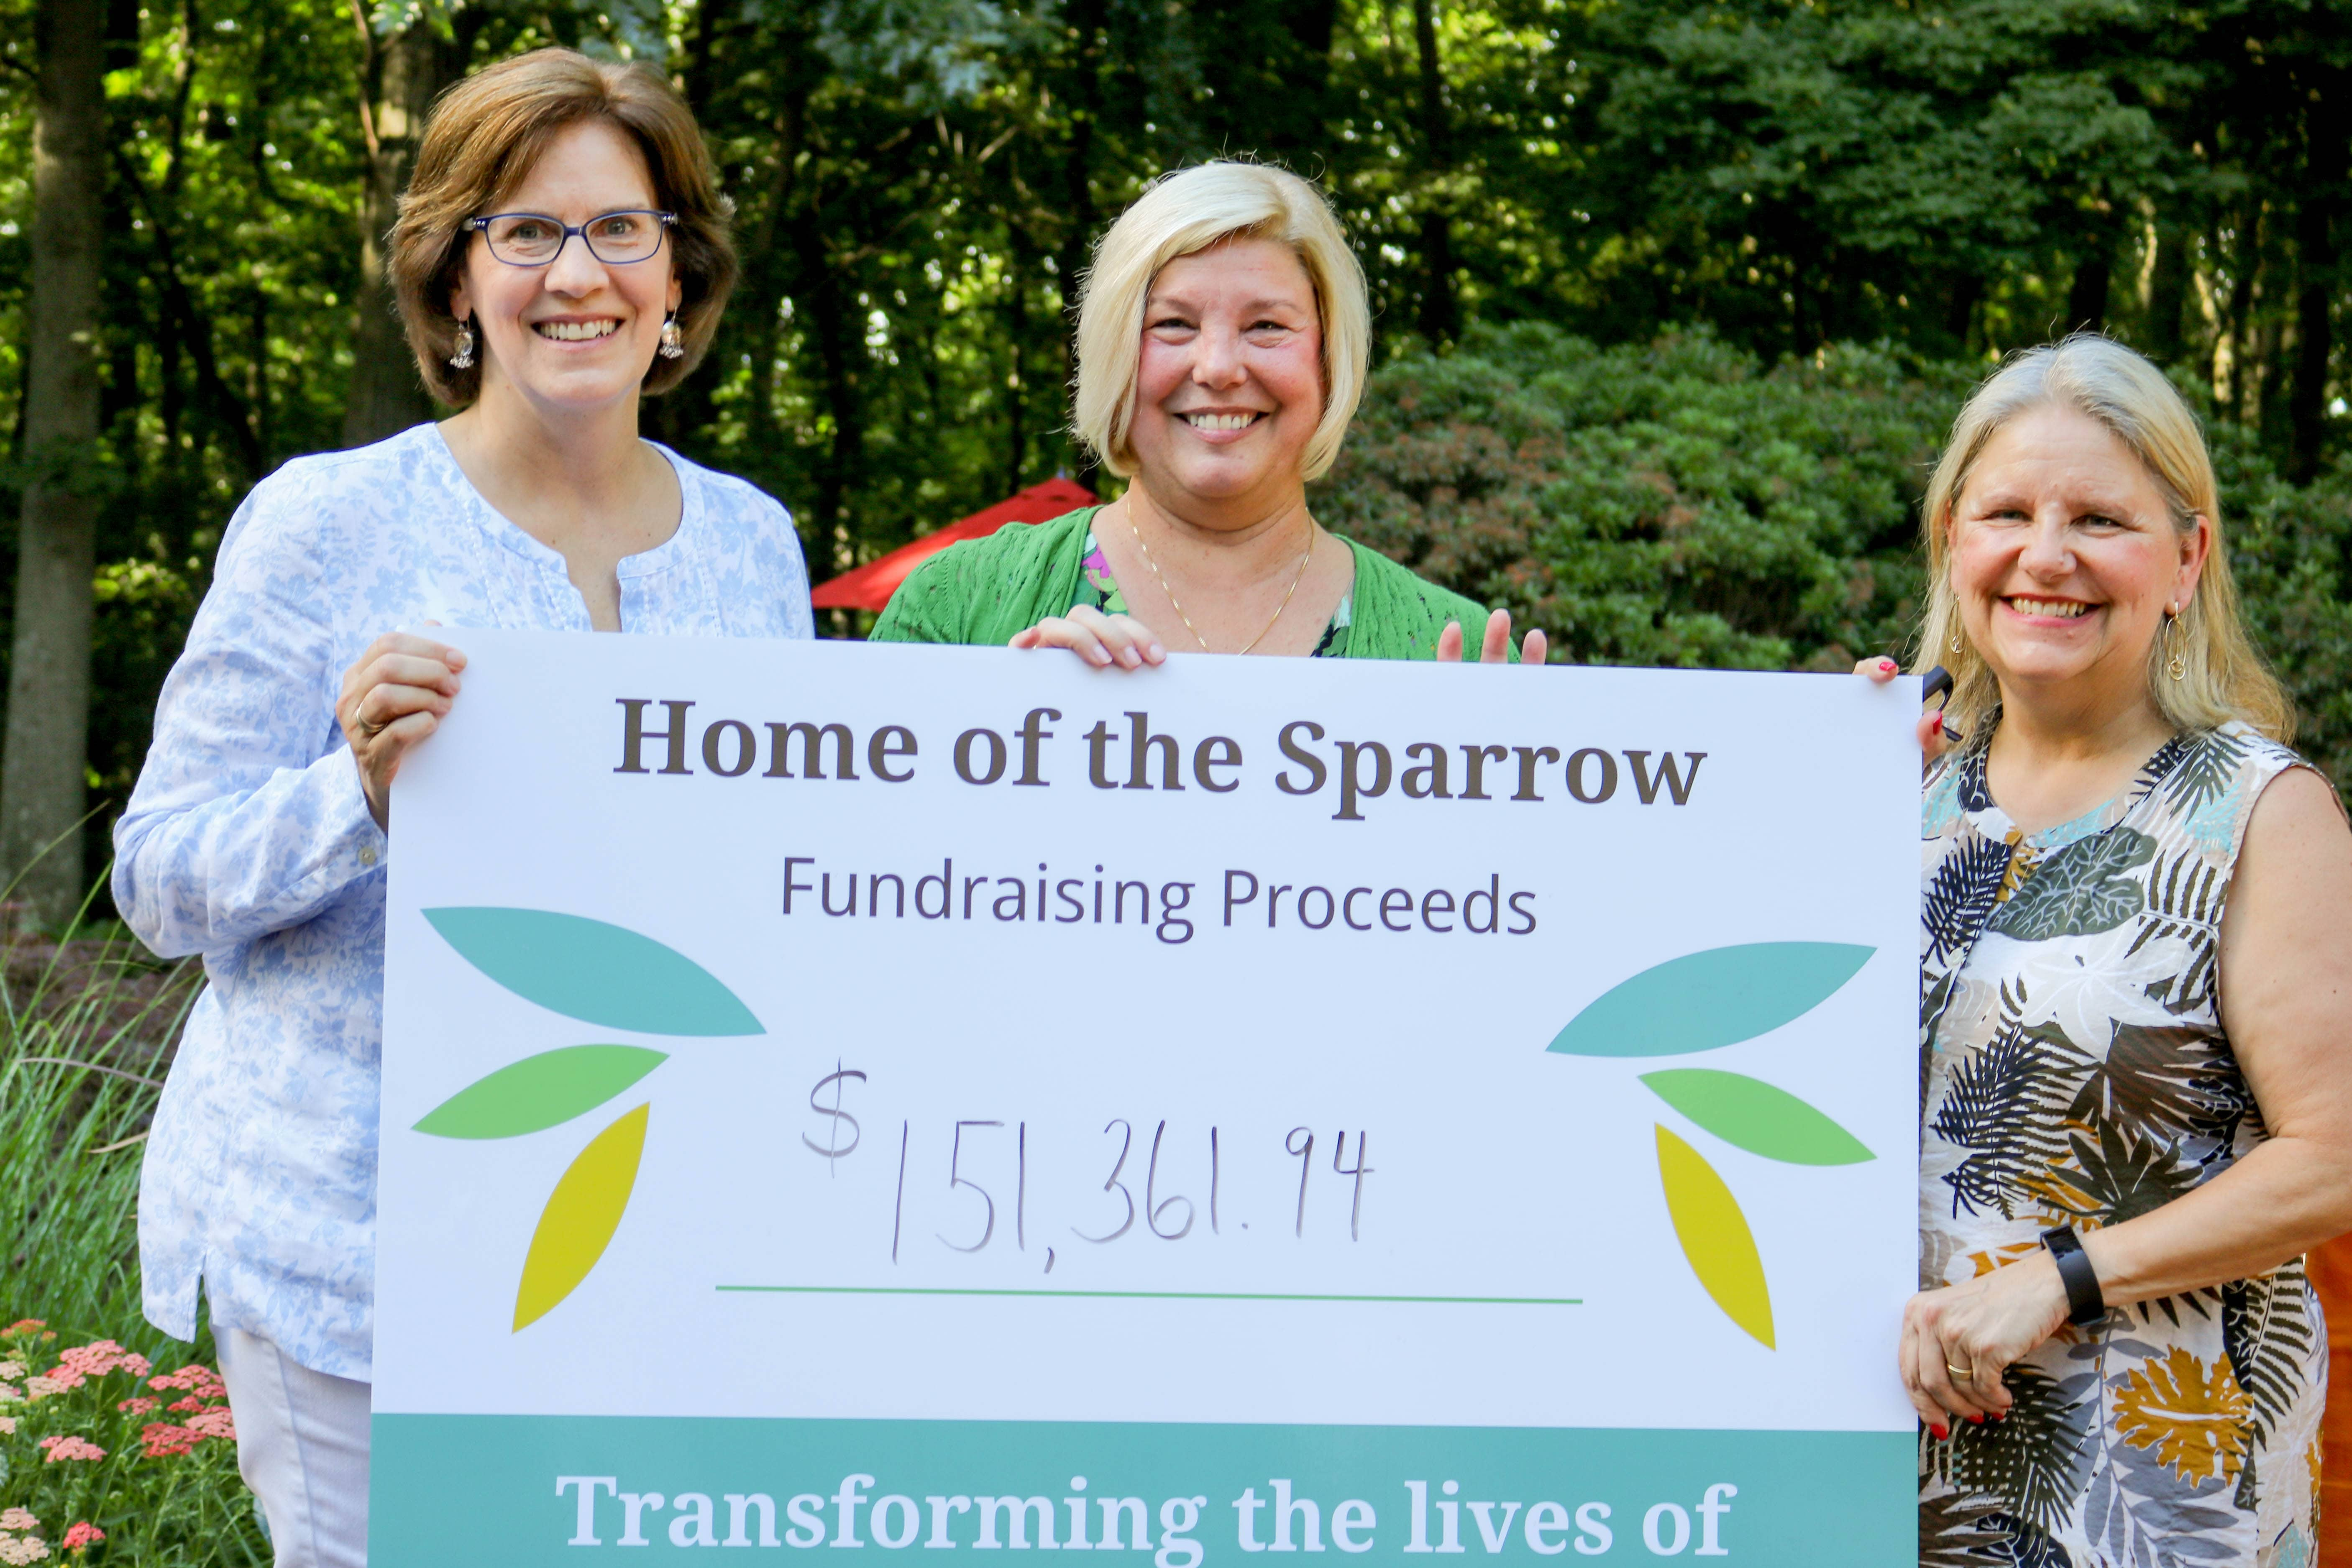 From left to right: Stacy Sempier (Gala Chair), Michelle E. Venema (C.E.O), Darla Nutter (Director of Operations)